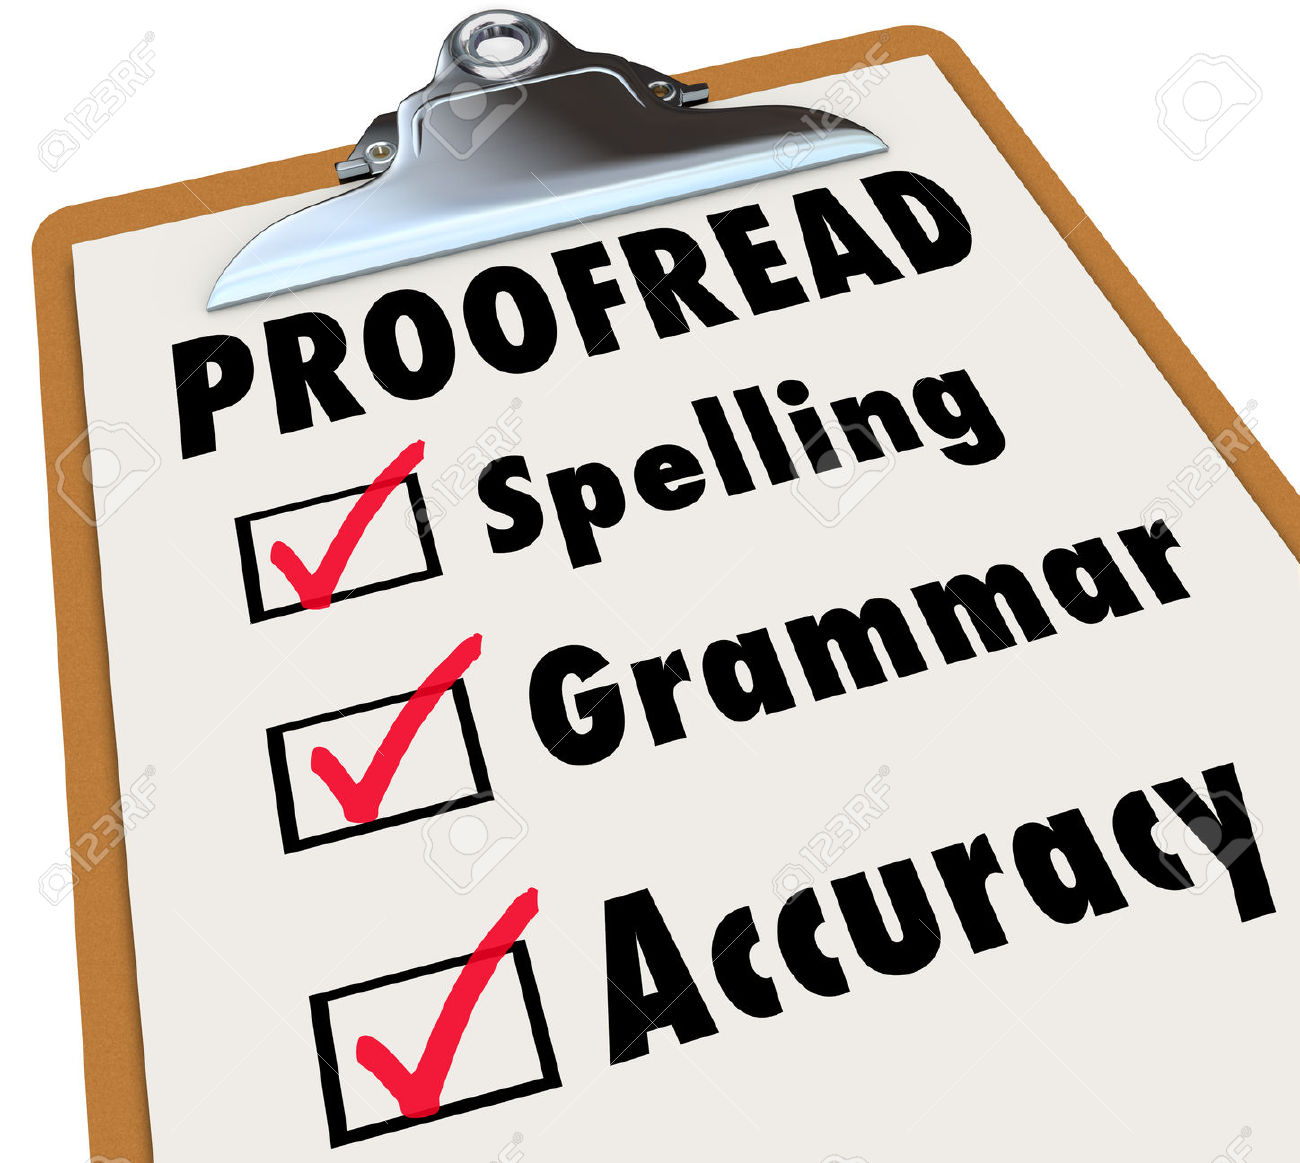 010 Proofread Checklist And Checked Boxes Next To The Words Spelling Grammar Accuracy As Things Stock Photo Essay Unique Proofreading Service Website University Full